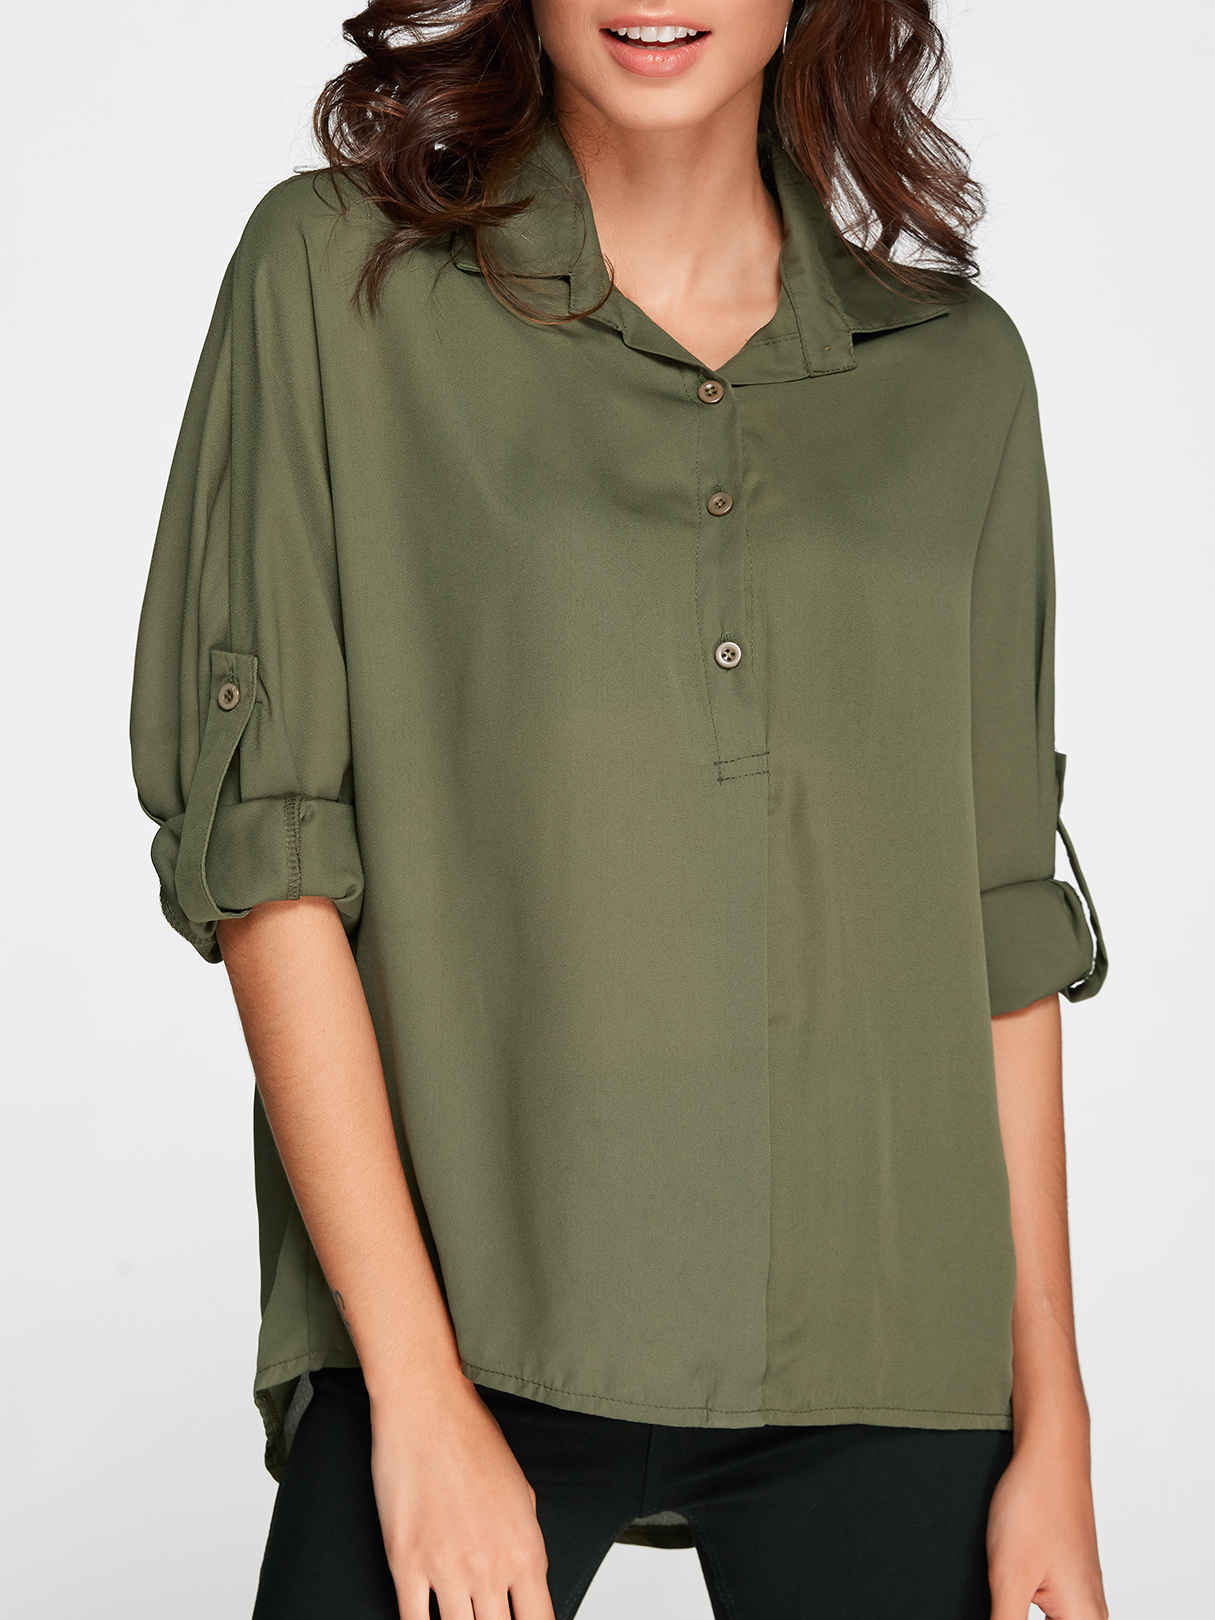 "Green V-neck Long Sleeves Blouse ã±â""ã±âƒã±â'ã°â±ã°â¾ã° ã°âºã°â° attic flowers g14qs0628"